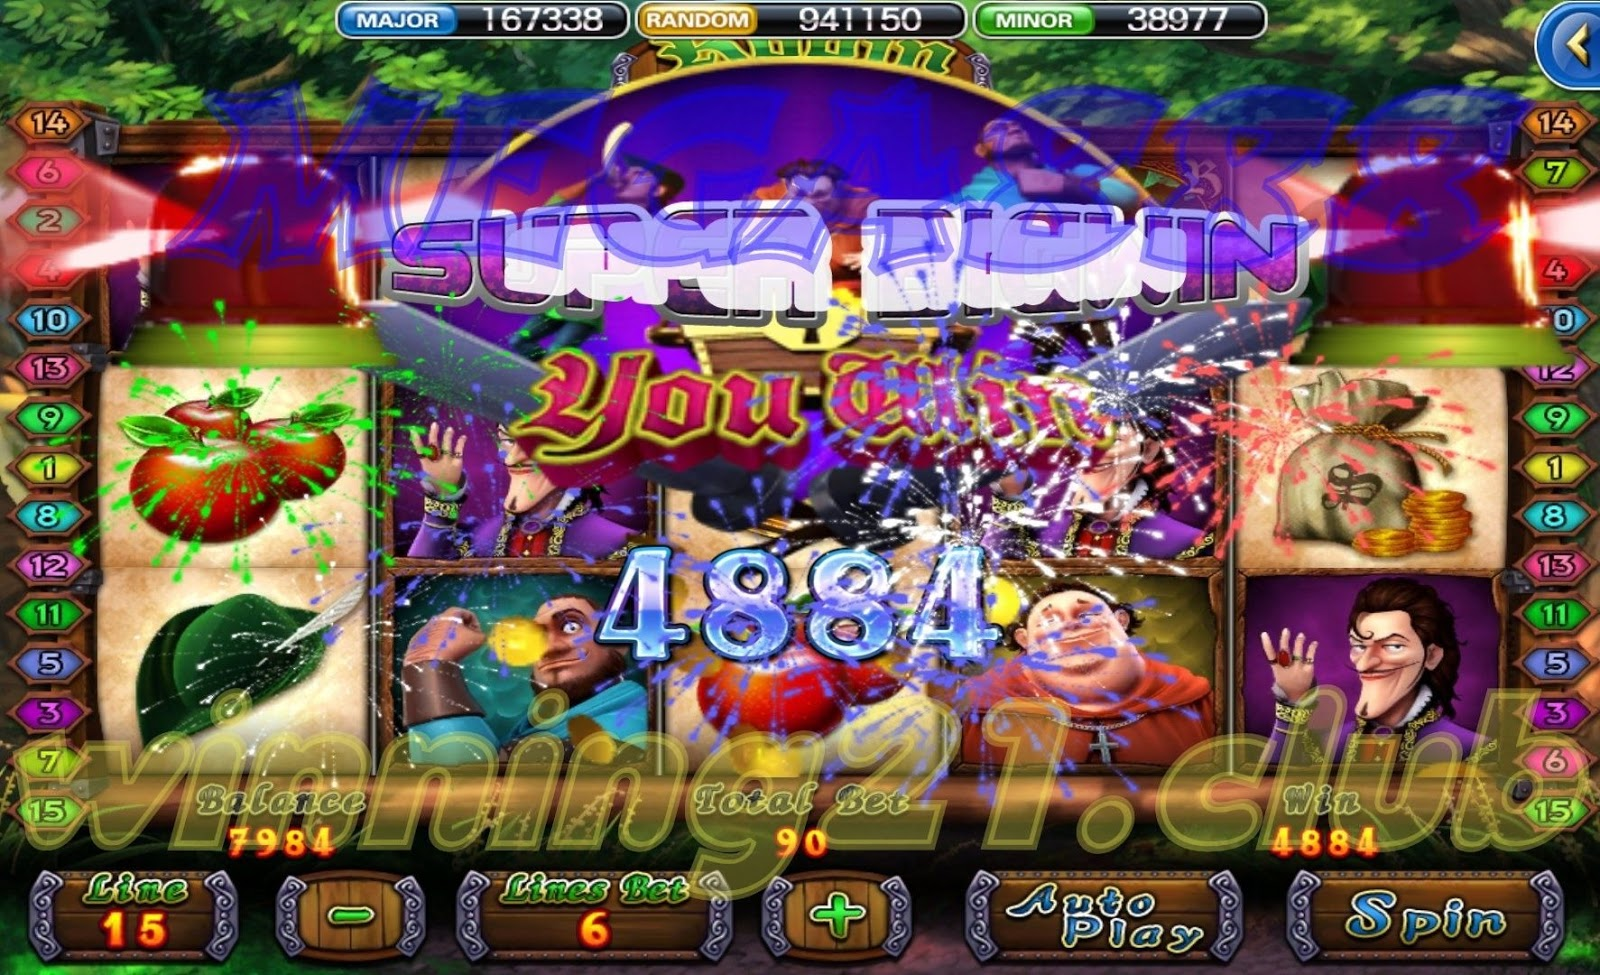 Ke Xing: New Online Game MEGA888 Is Now Provided Free